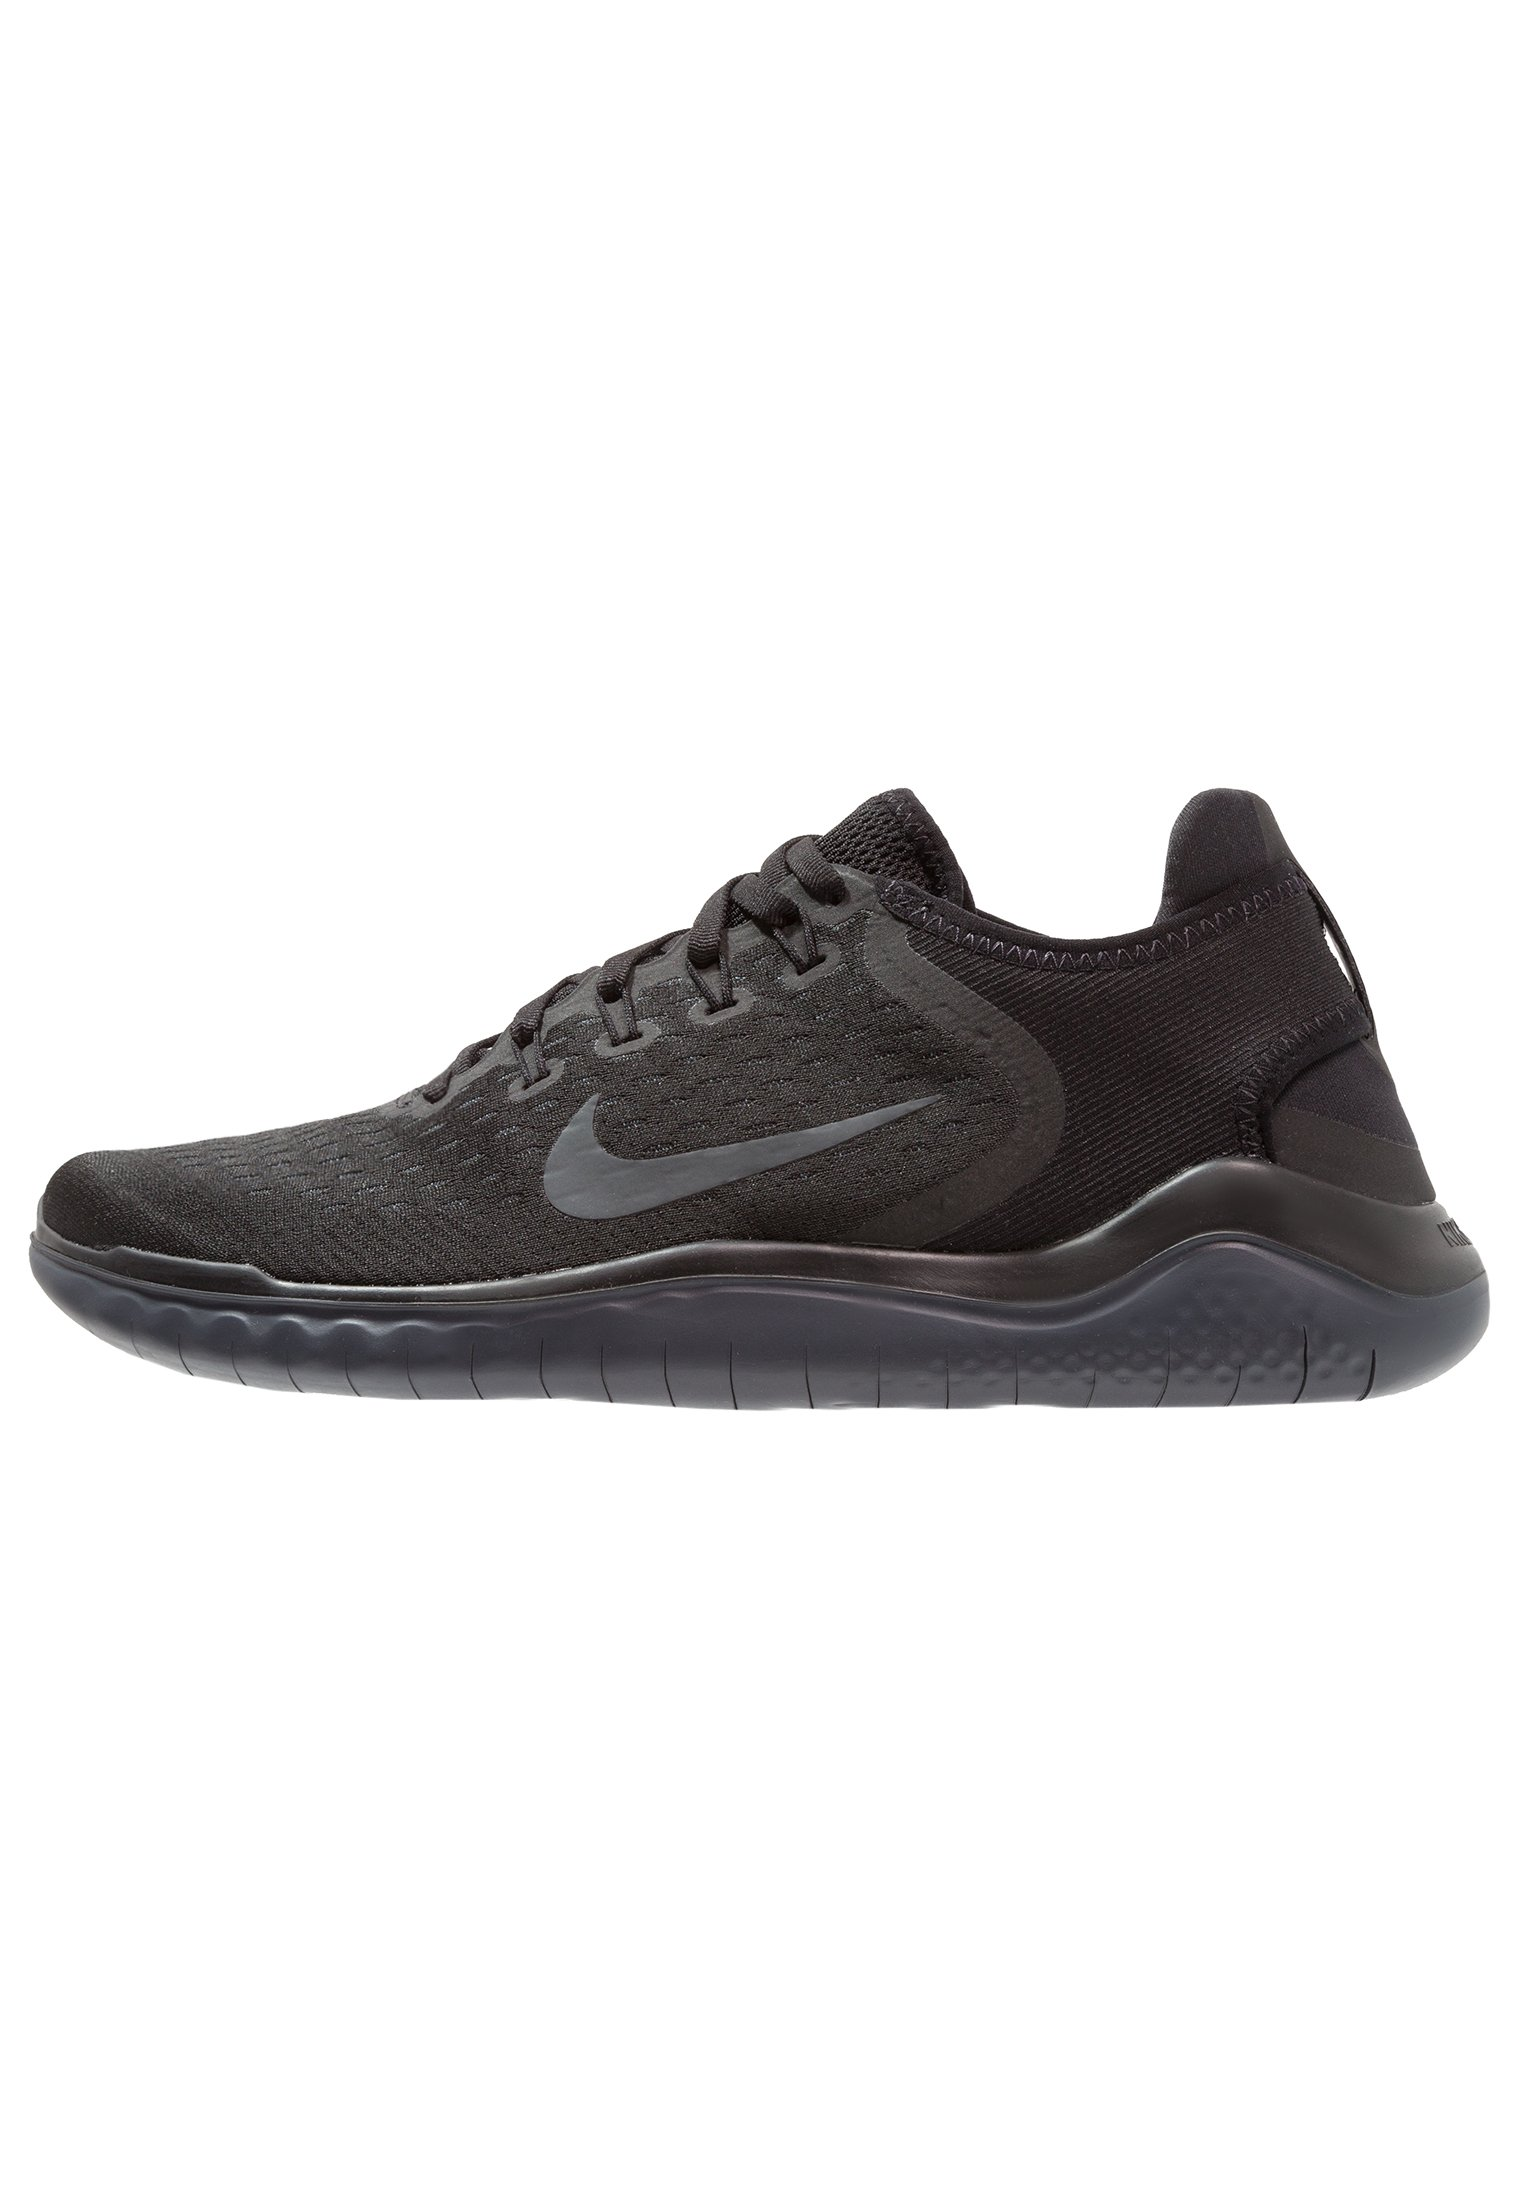 FREE RN 2018 Trainers blackanthracite